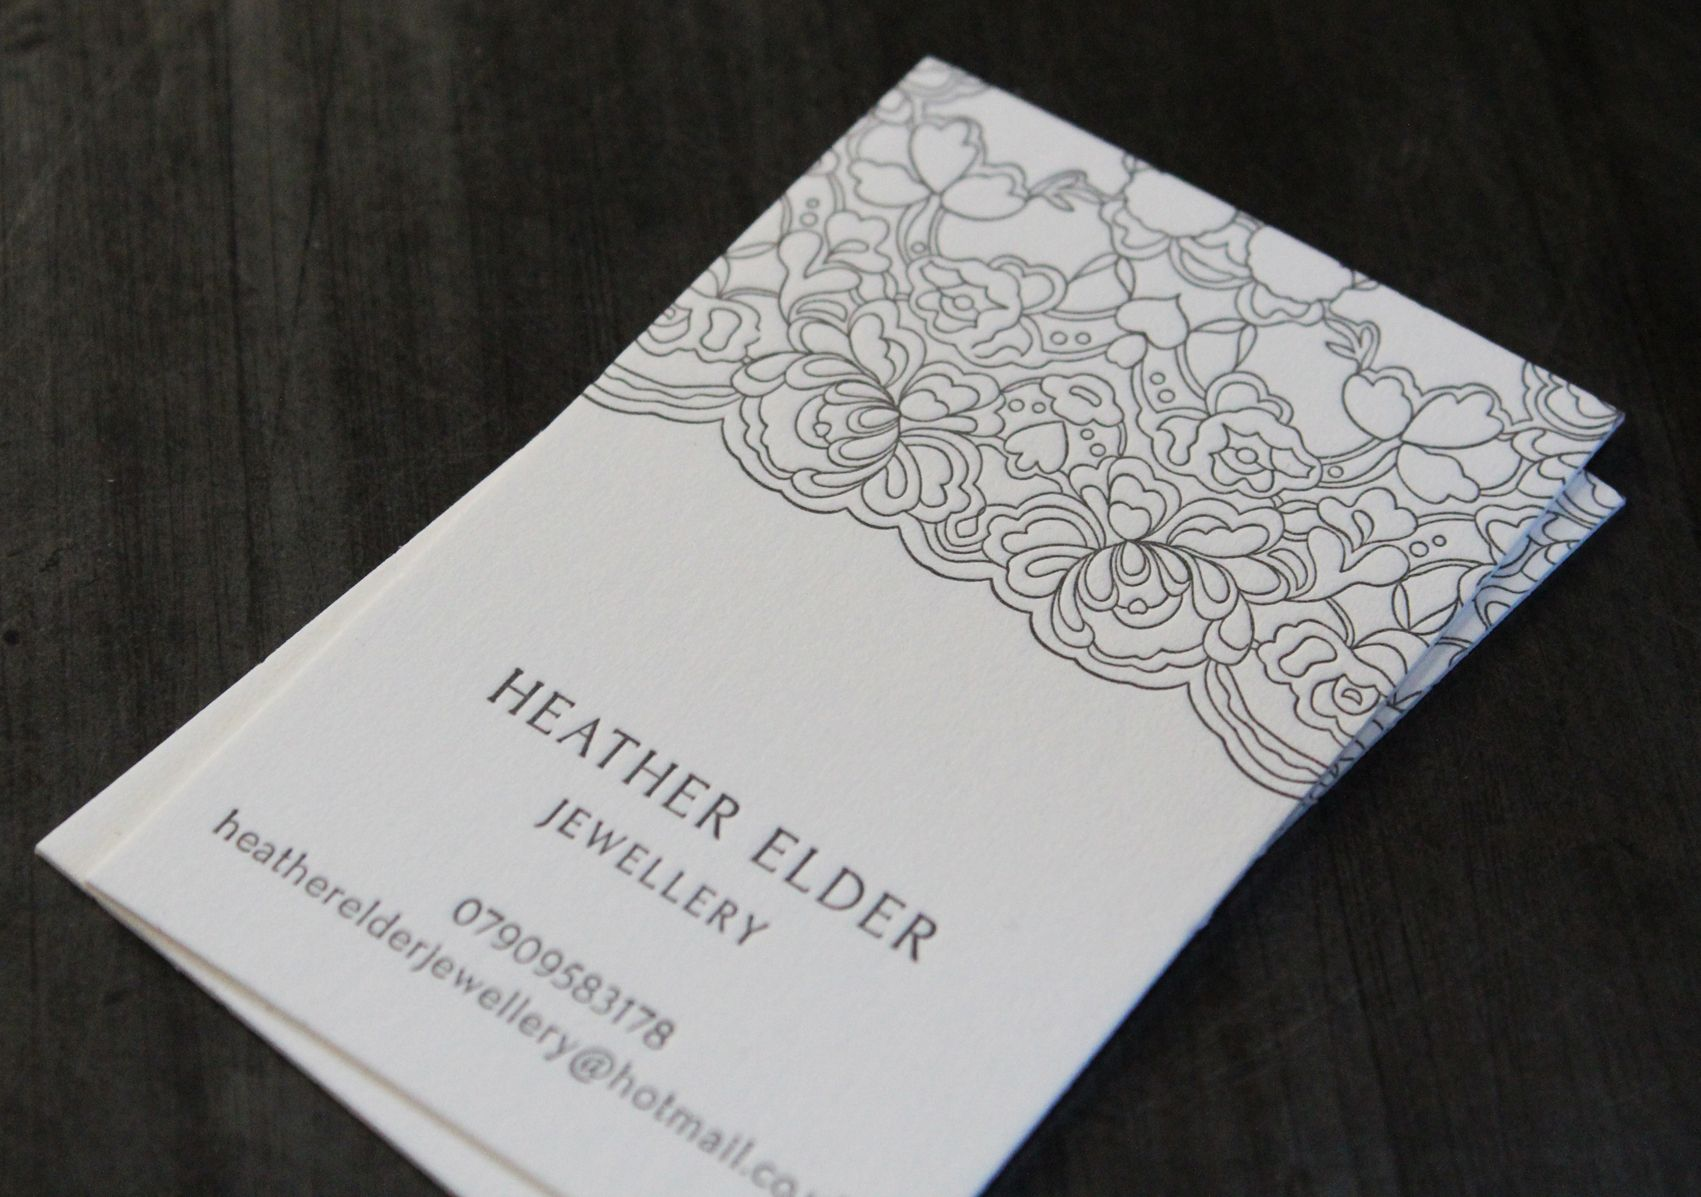 Business cards for heather elder jewellery letterpress printed on business cards for heather elder jewellery letterpress printed on 100 cotton saunders waterford stock colourmoves Images